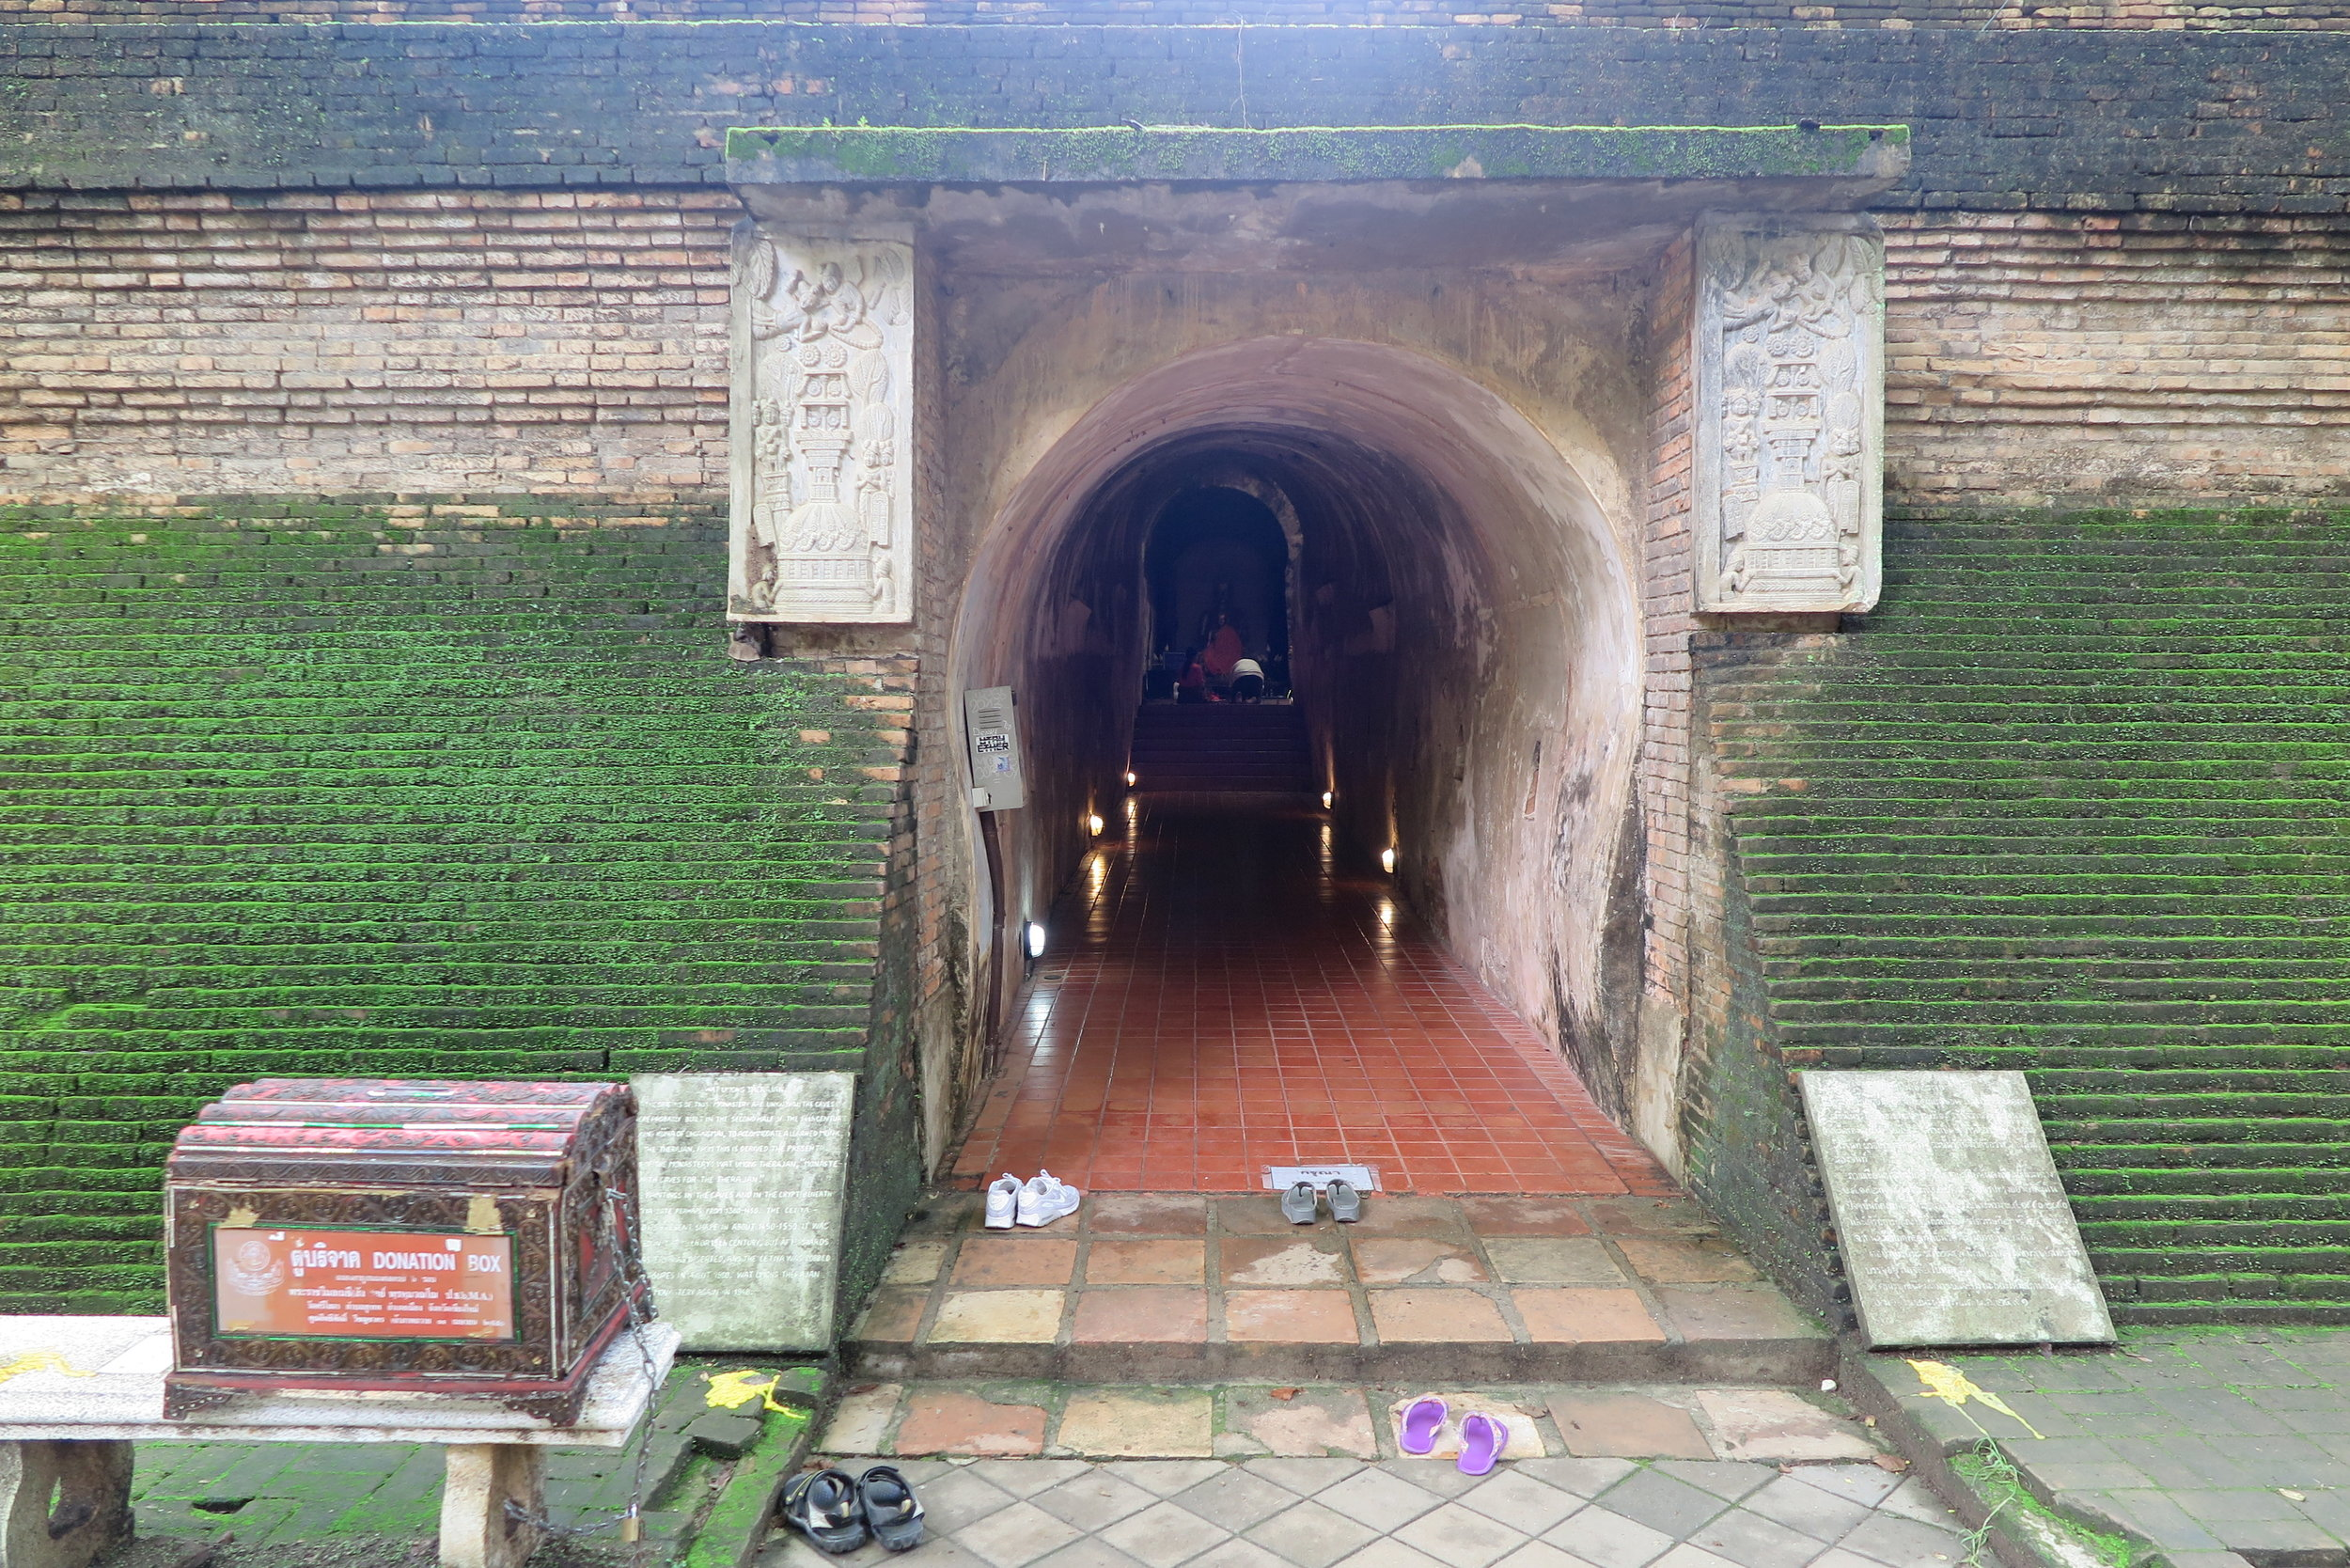 Wat Umong, a 700 year old temple in Chiang Mai, known for its tunnels.